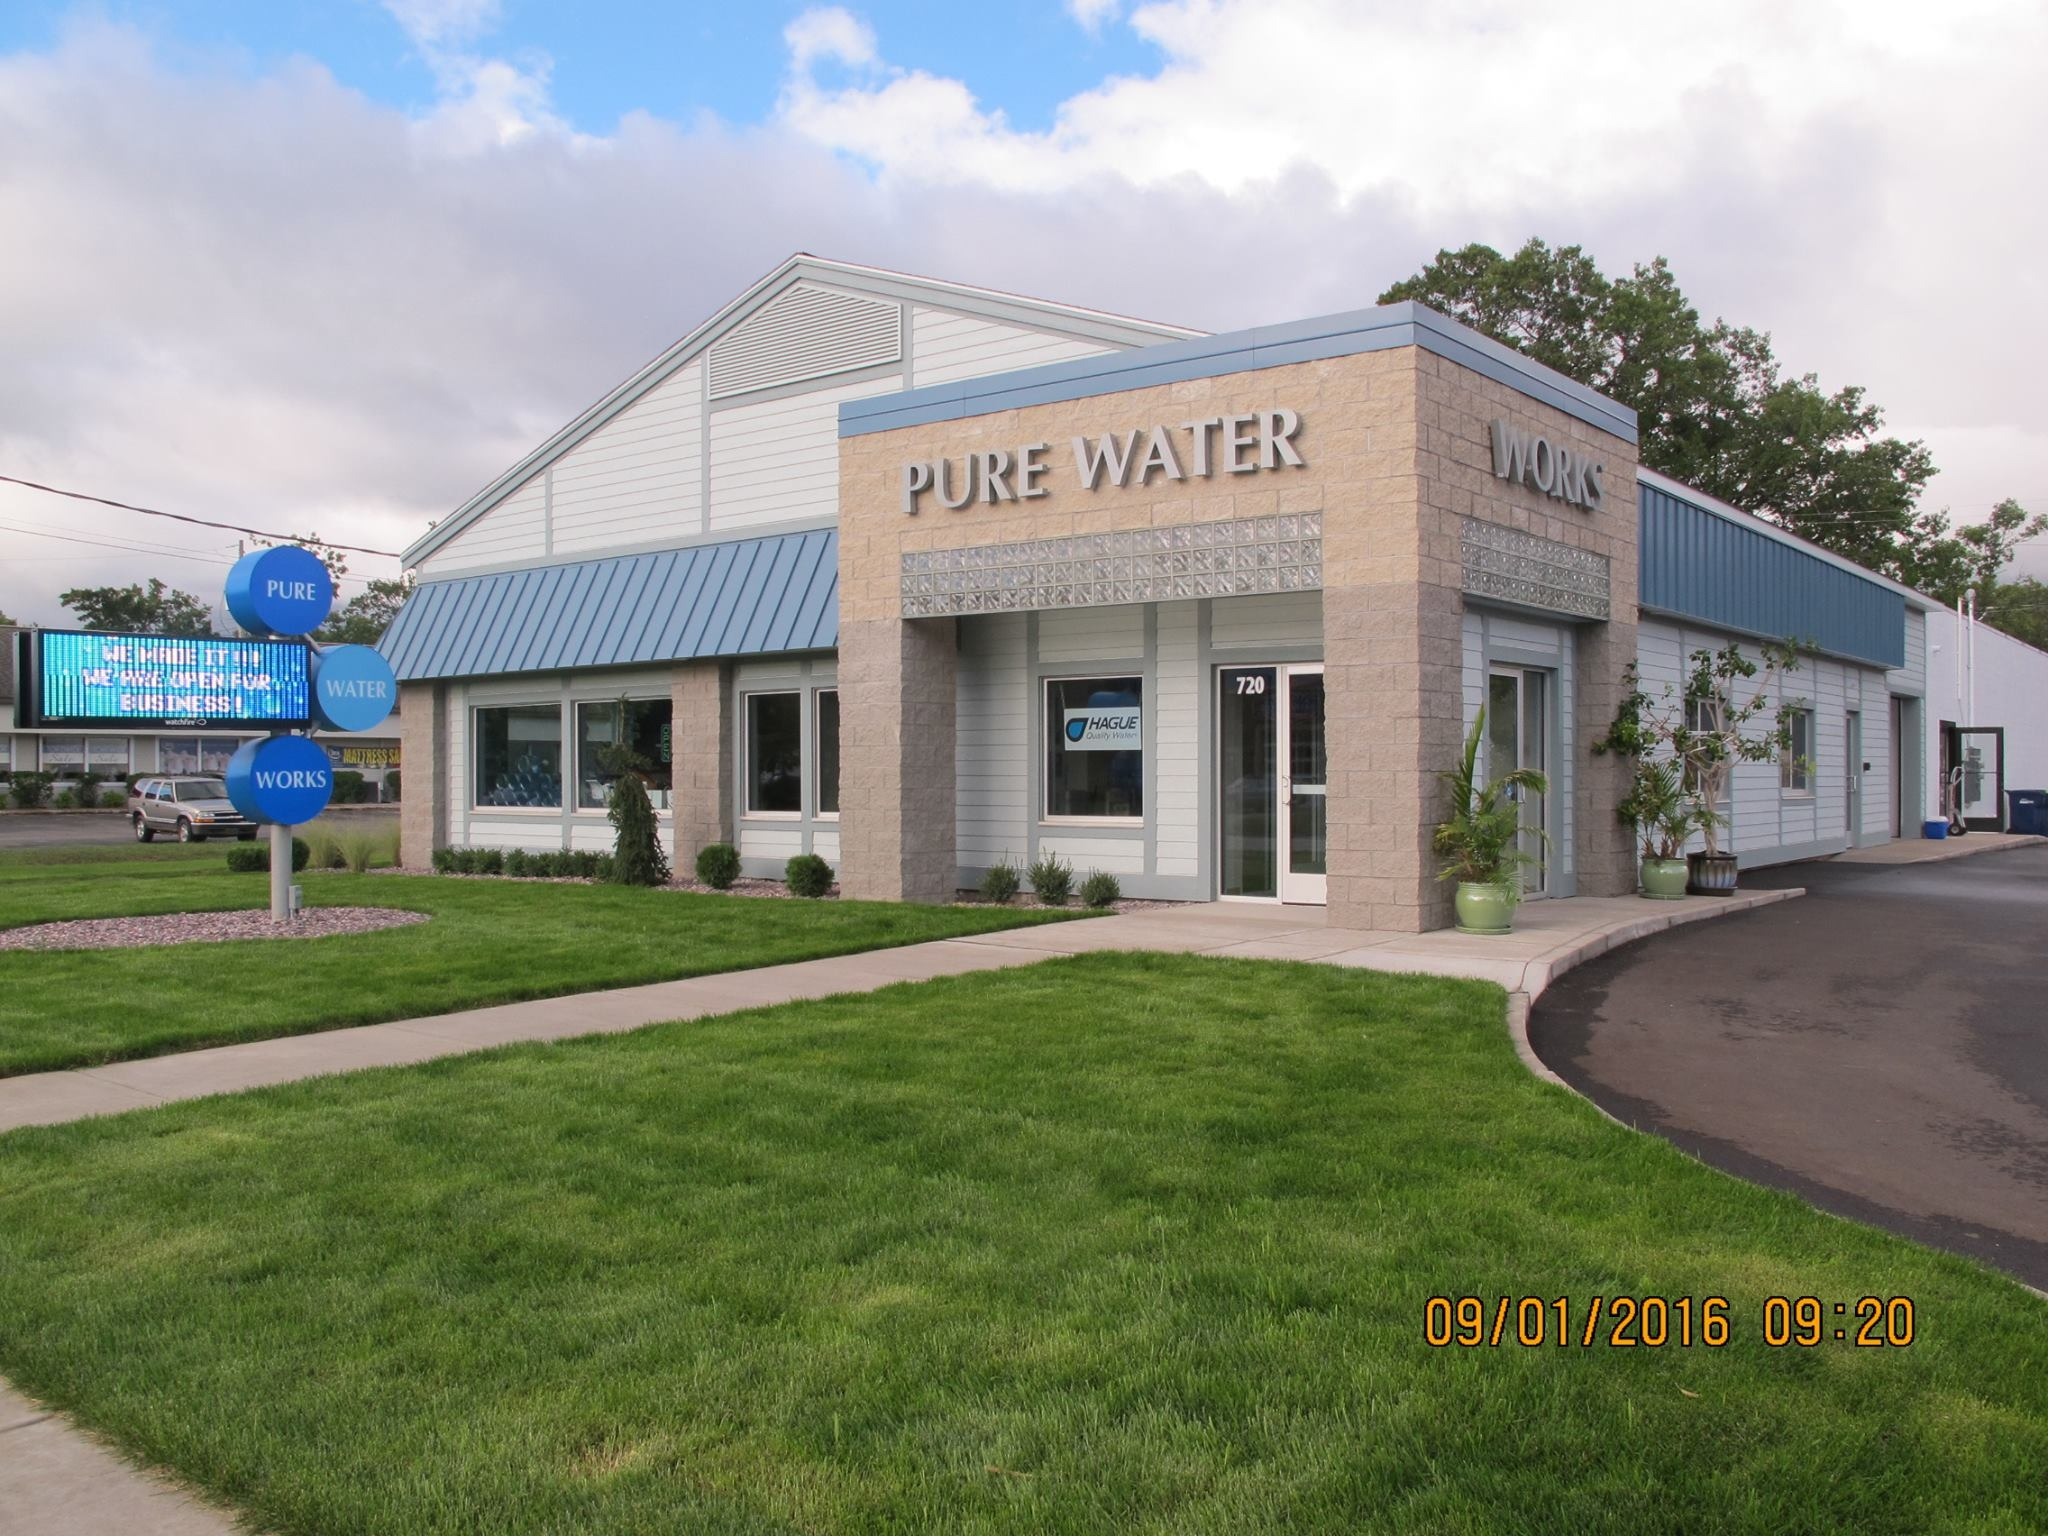 Pure Water Works, Inc. image 0